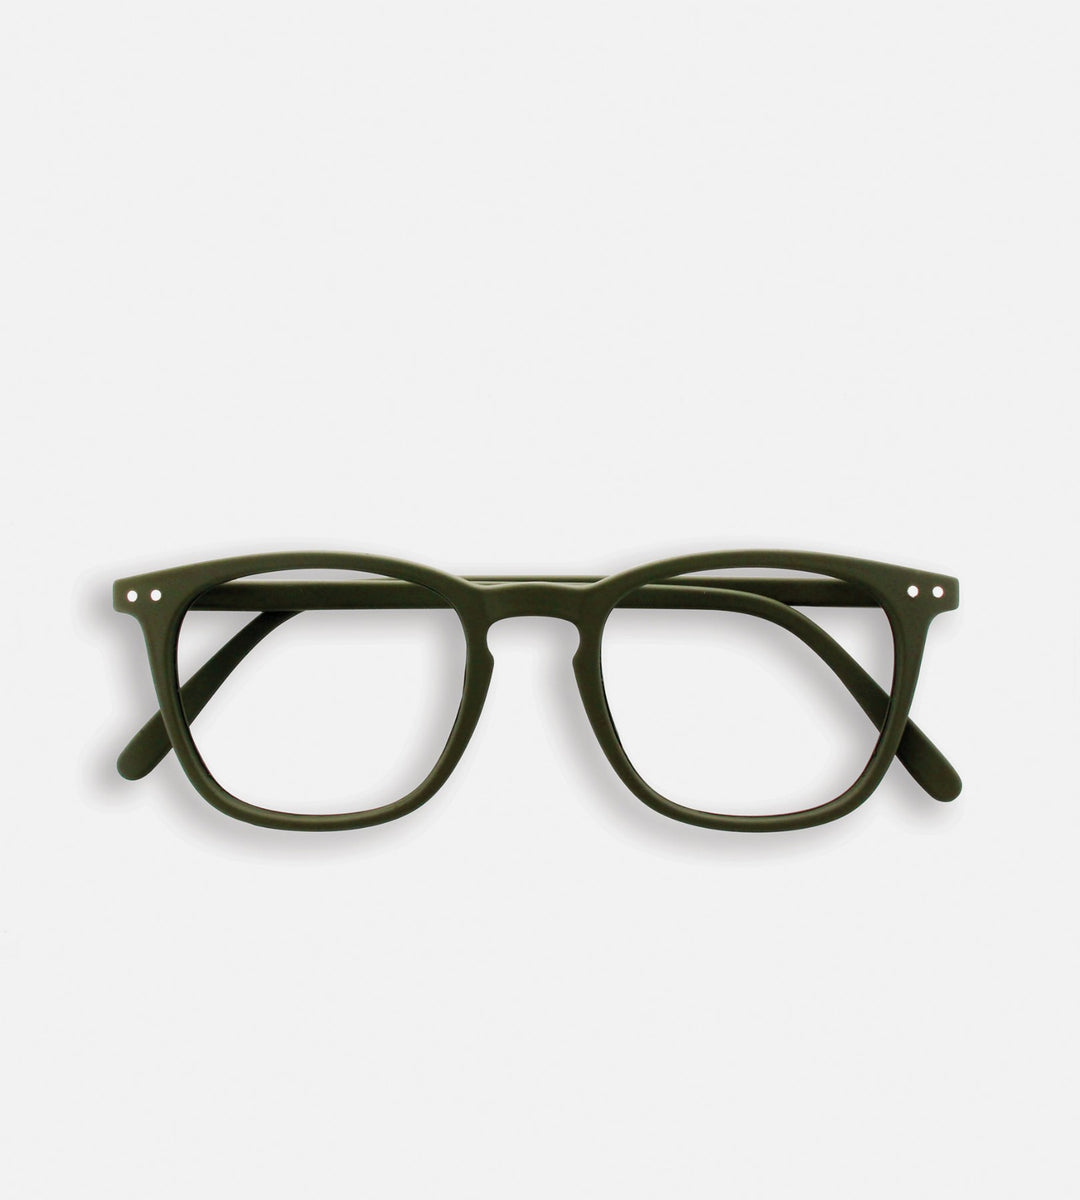 Izipizi Reading Glasses | # E | Khaki Green